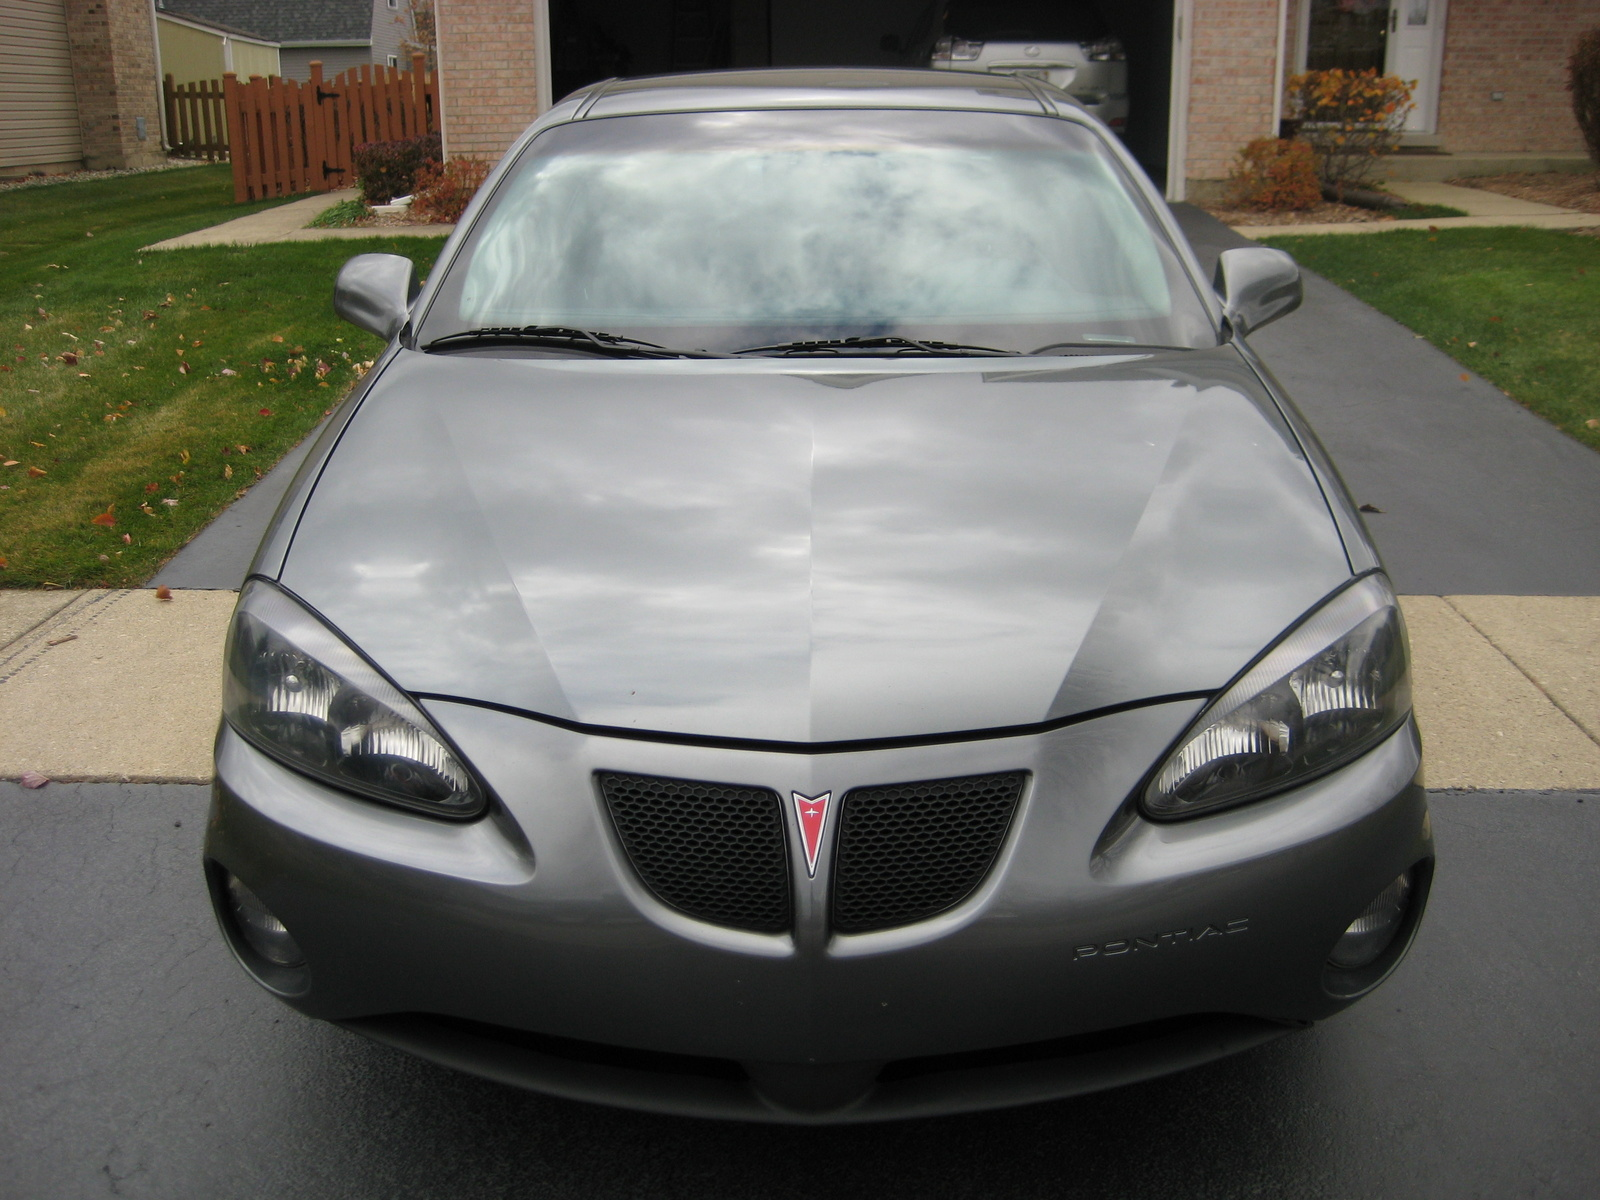 2004 Pontiac Grand Prix - Overview